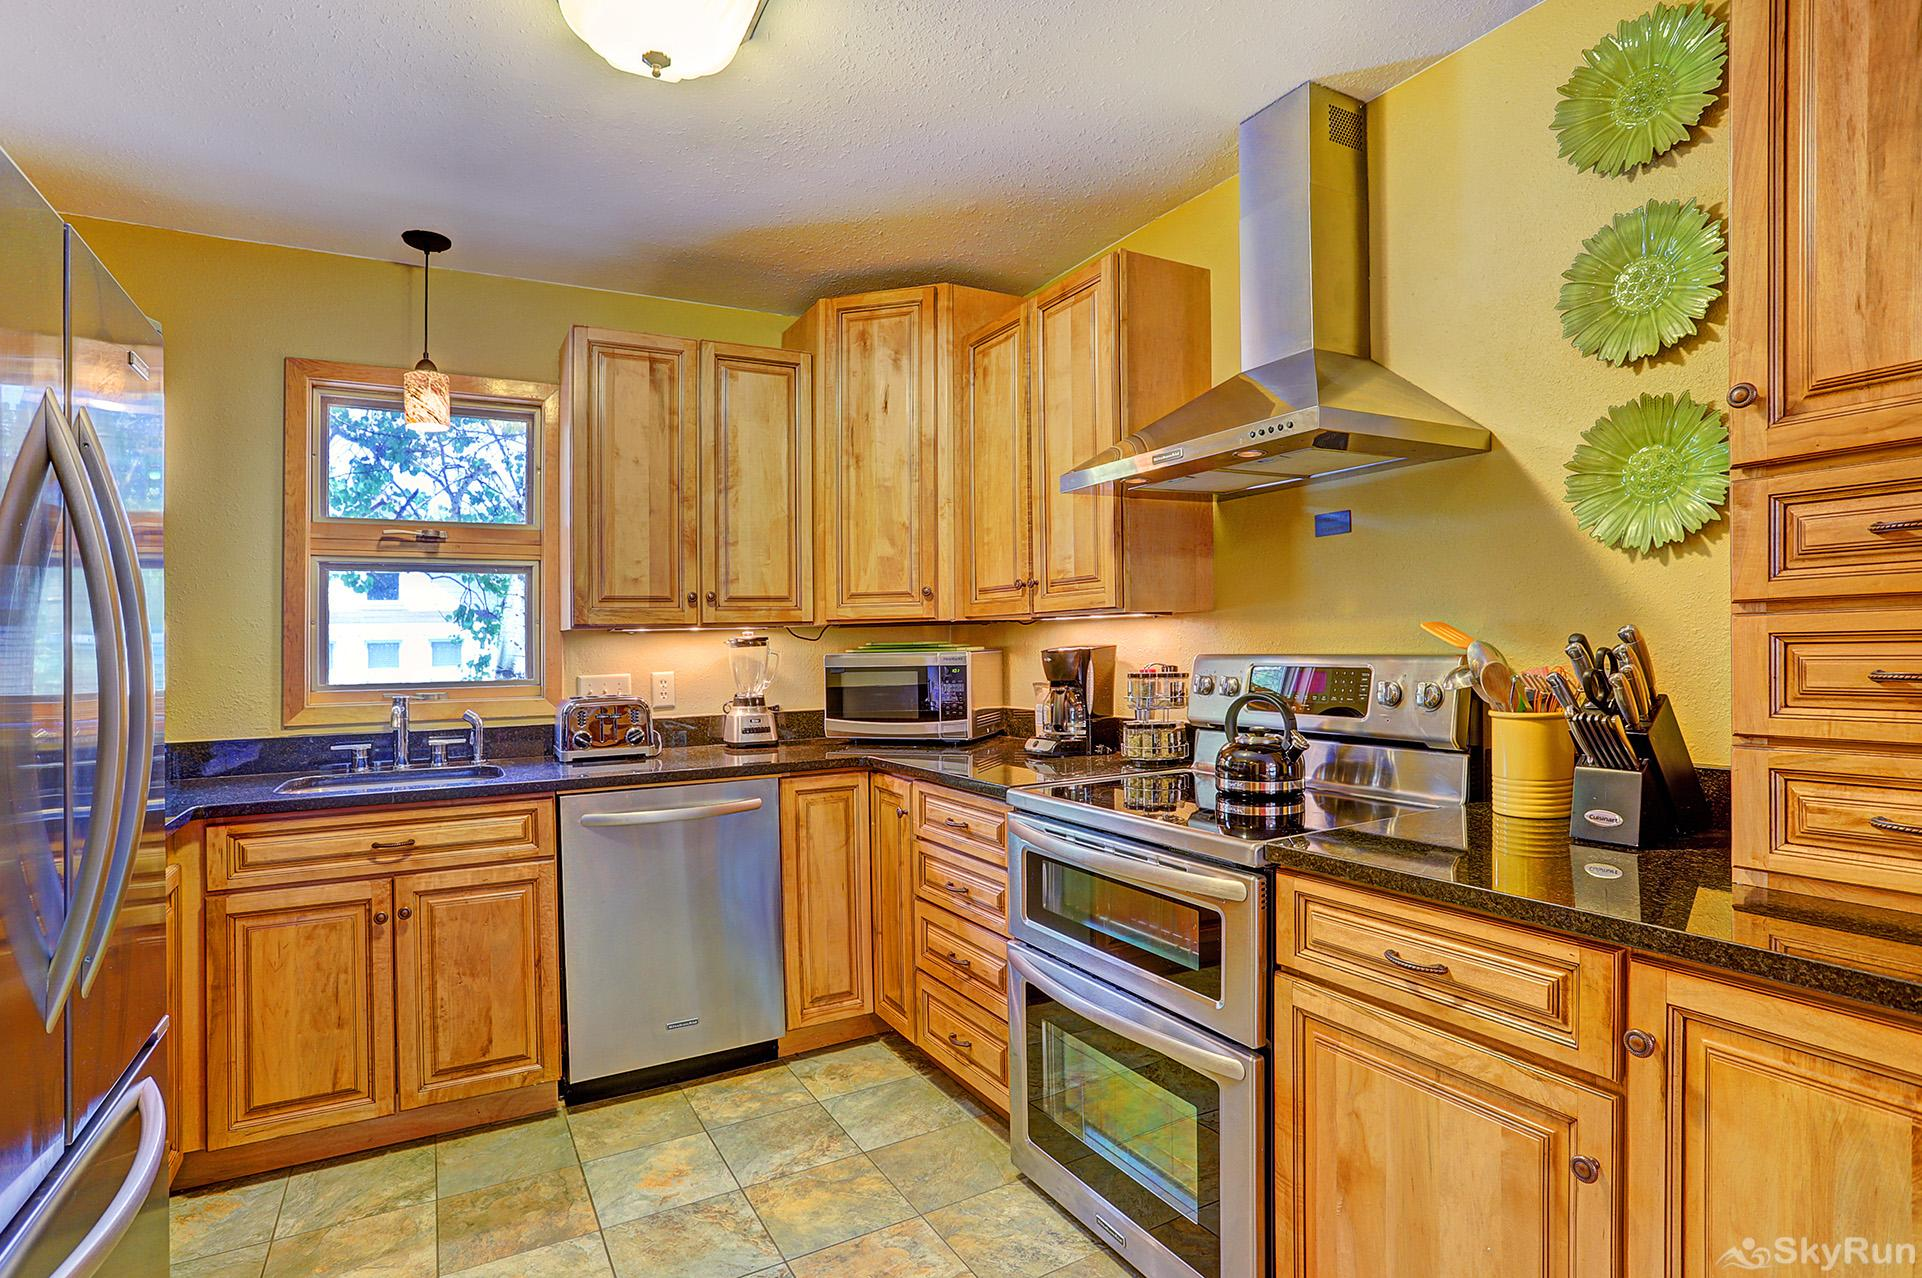 Imperial View Cottage Enjoy home cooked meals with the convenience of a fully equipped kitchen